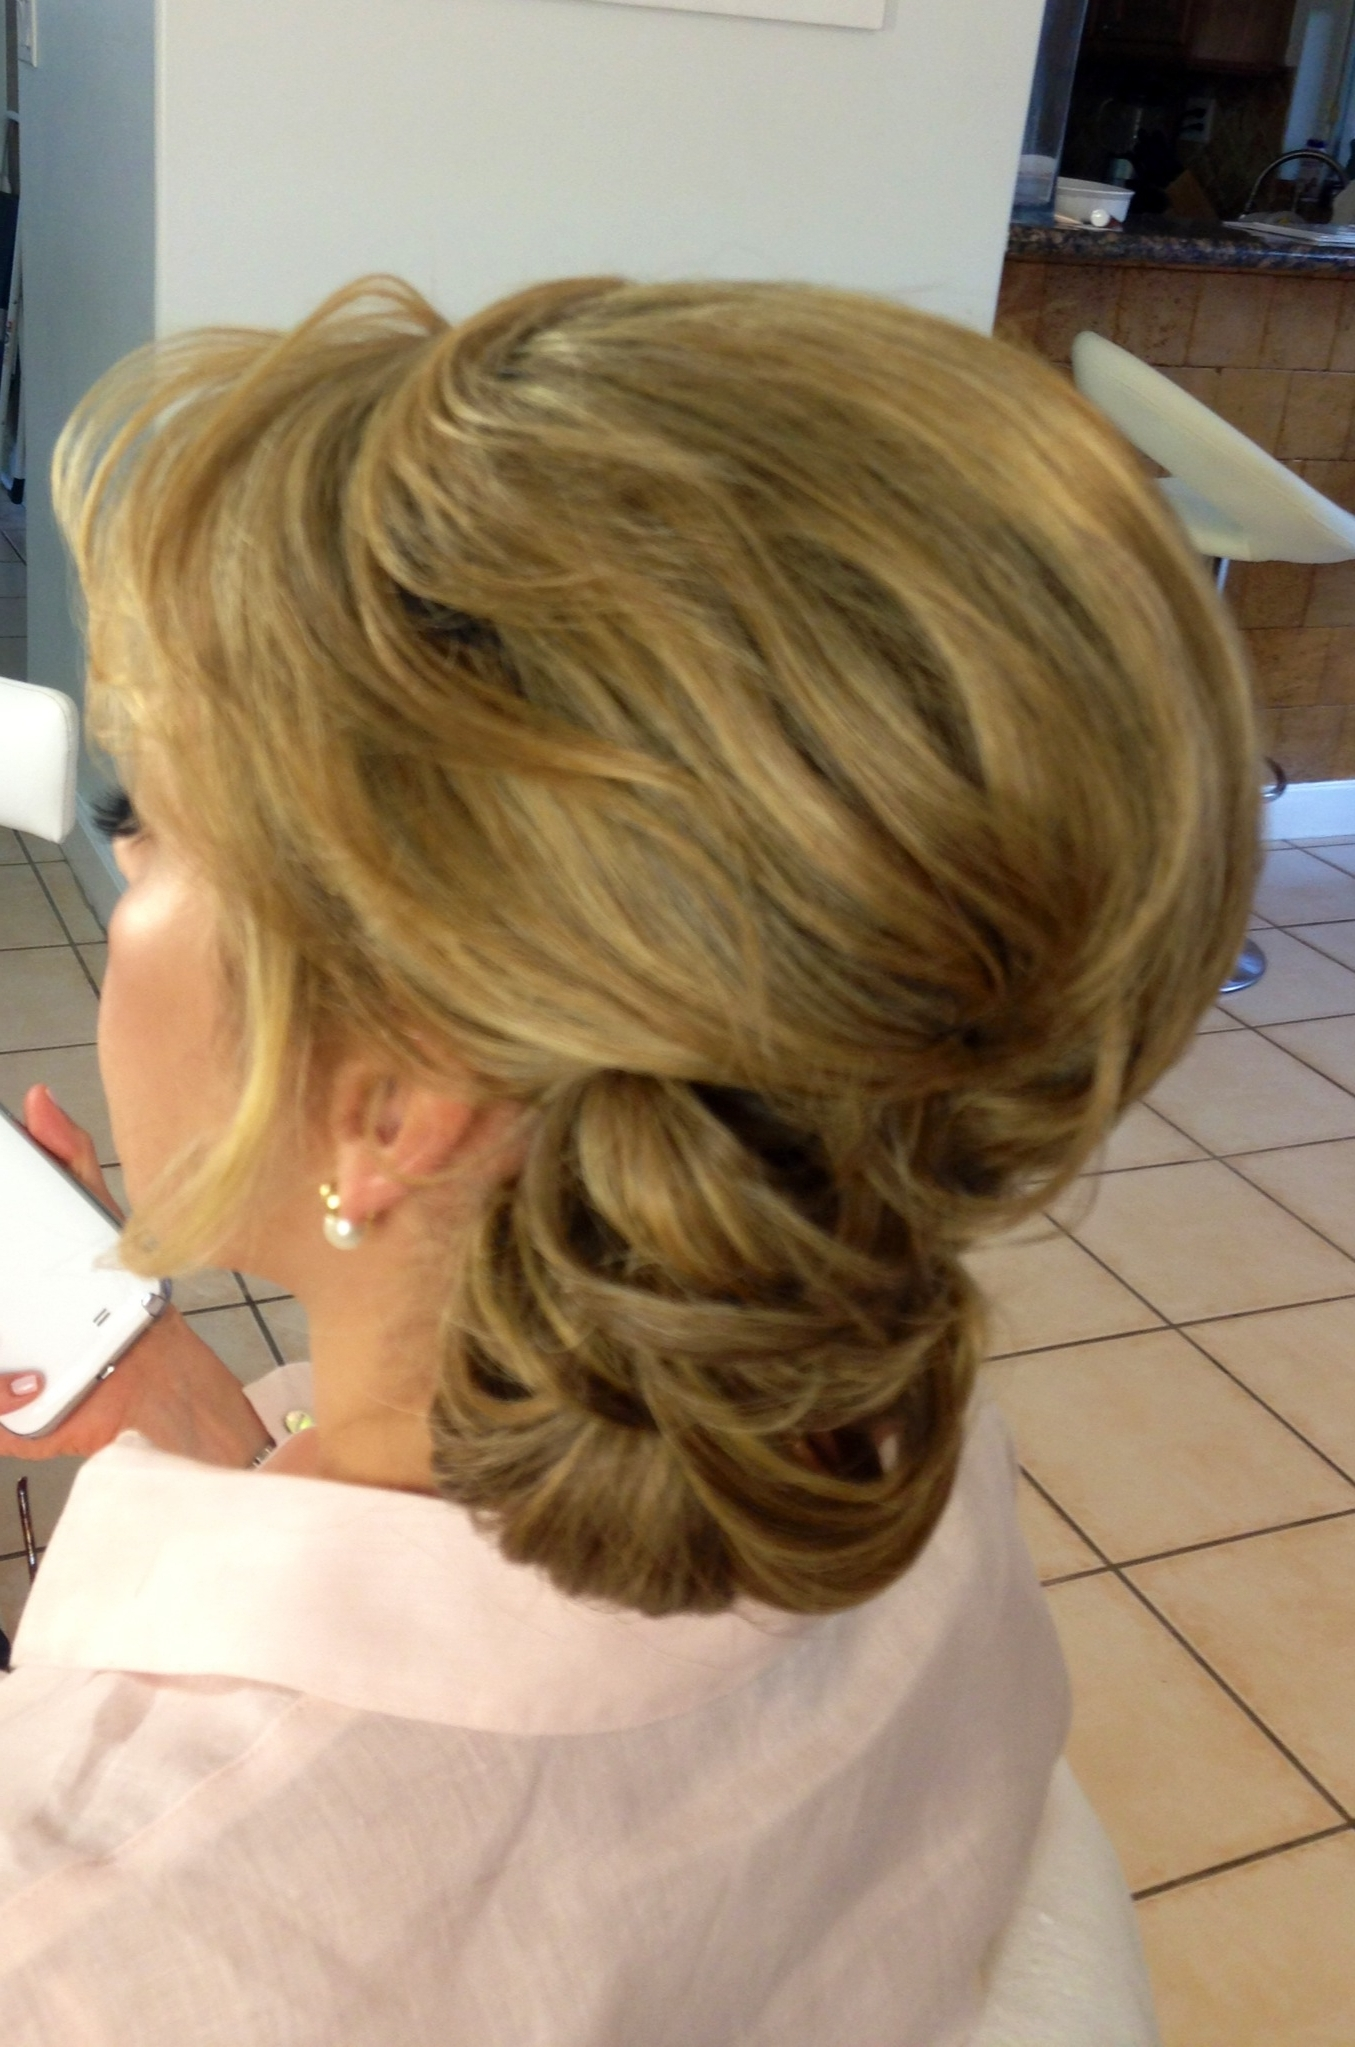 Endearing Half Up Hairstyles For Mother Of The Bride For Pictures Pertaining To Updo Hairstyles For Mother Of The Bride (Gallery 8 of 15)